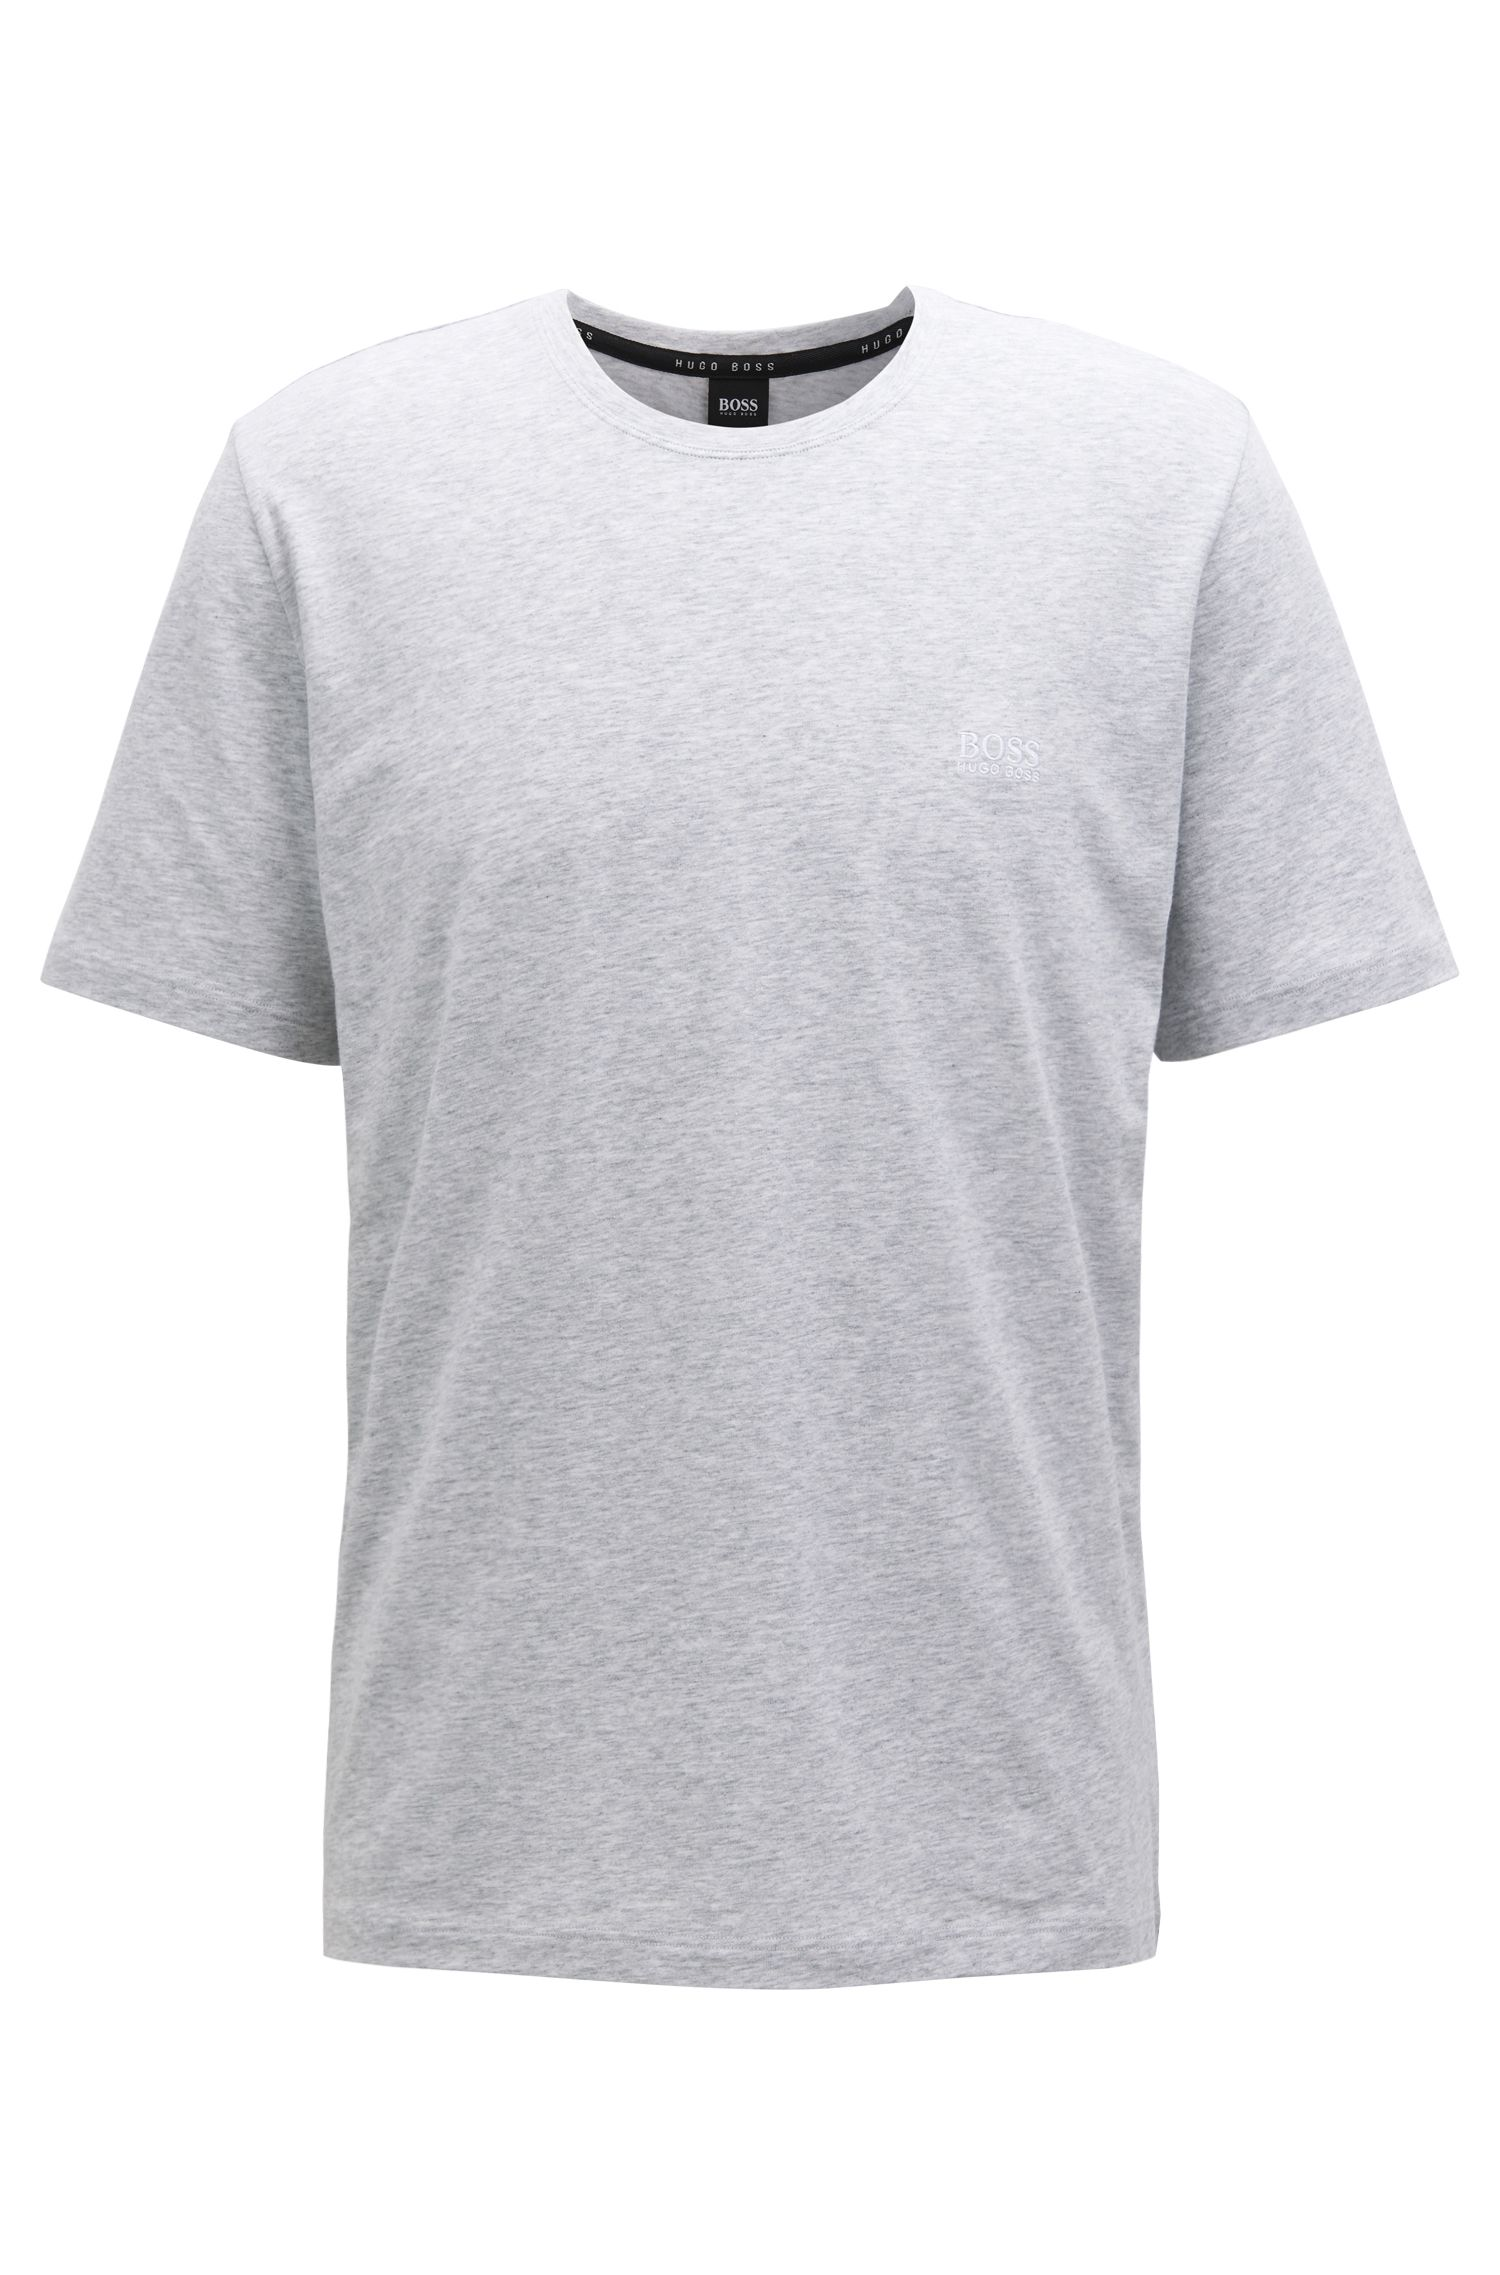 Loungewear T-shirt in stretch cotton, Grey